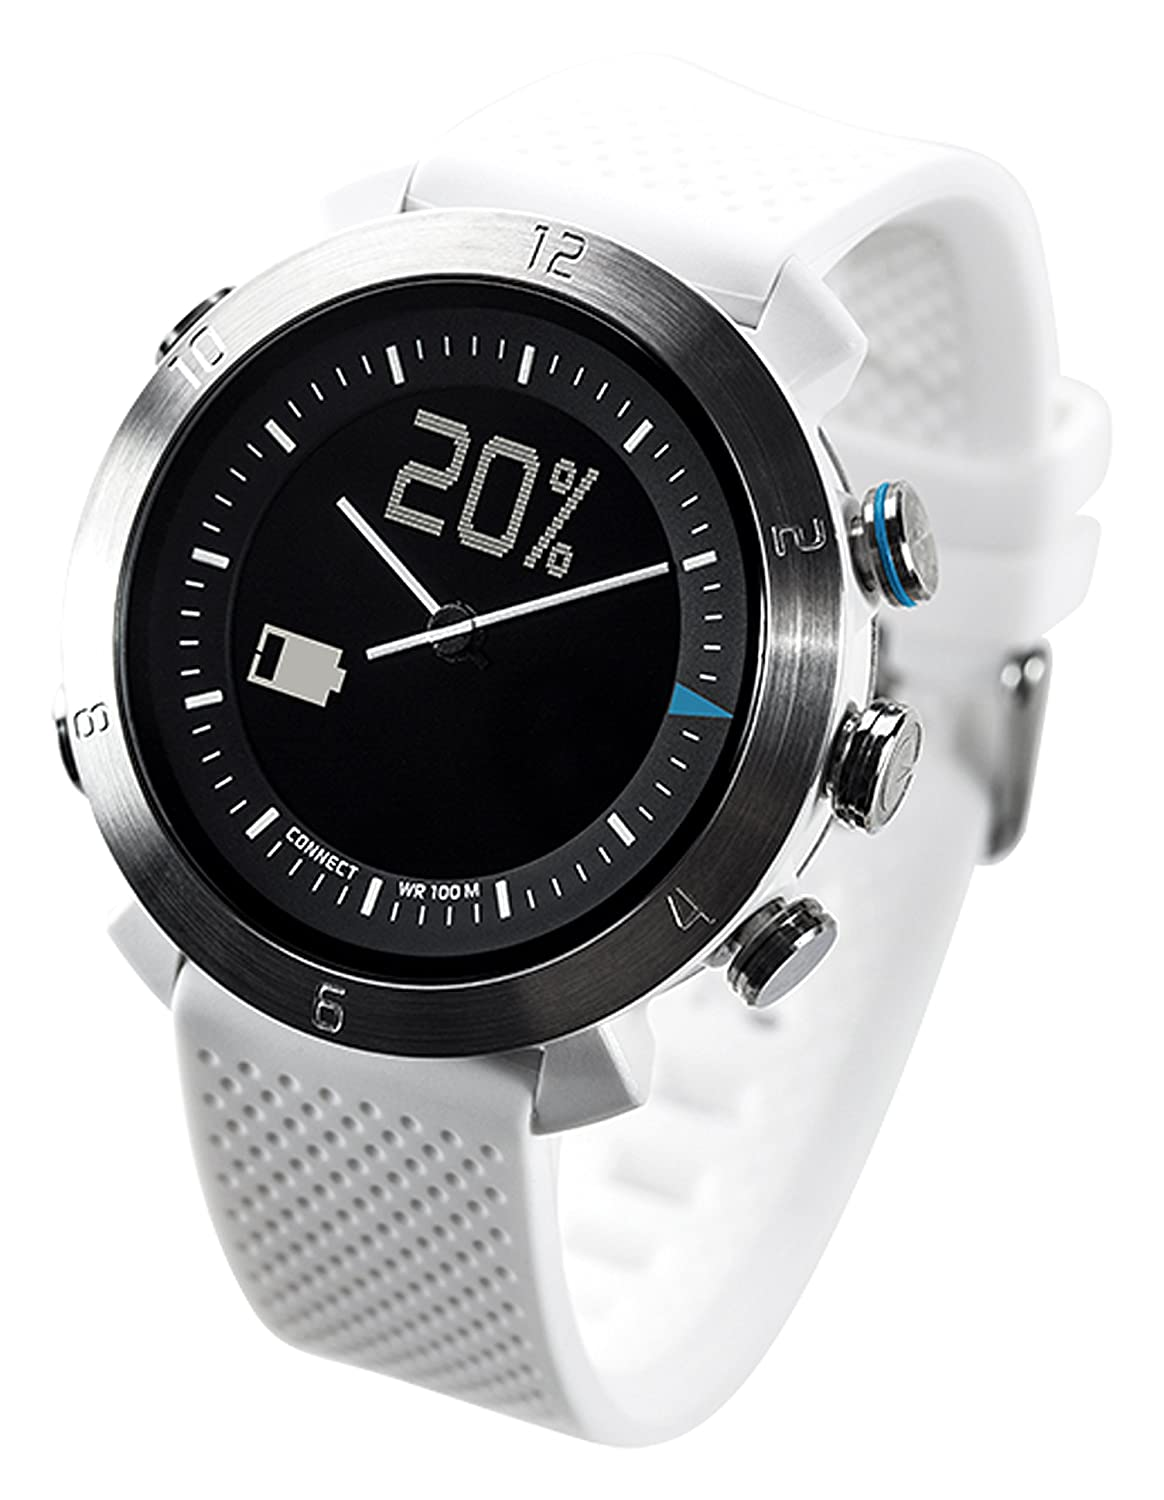 Cogito CW2.0-003-01 - Smartwatch (iOS 7.0/Android 4.3), Blanco